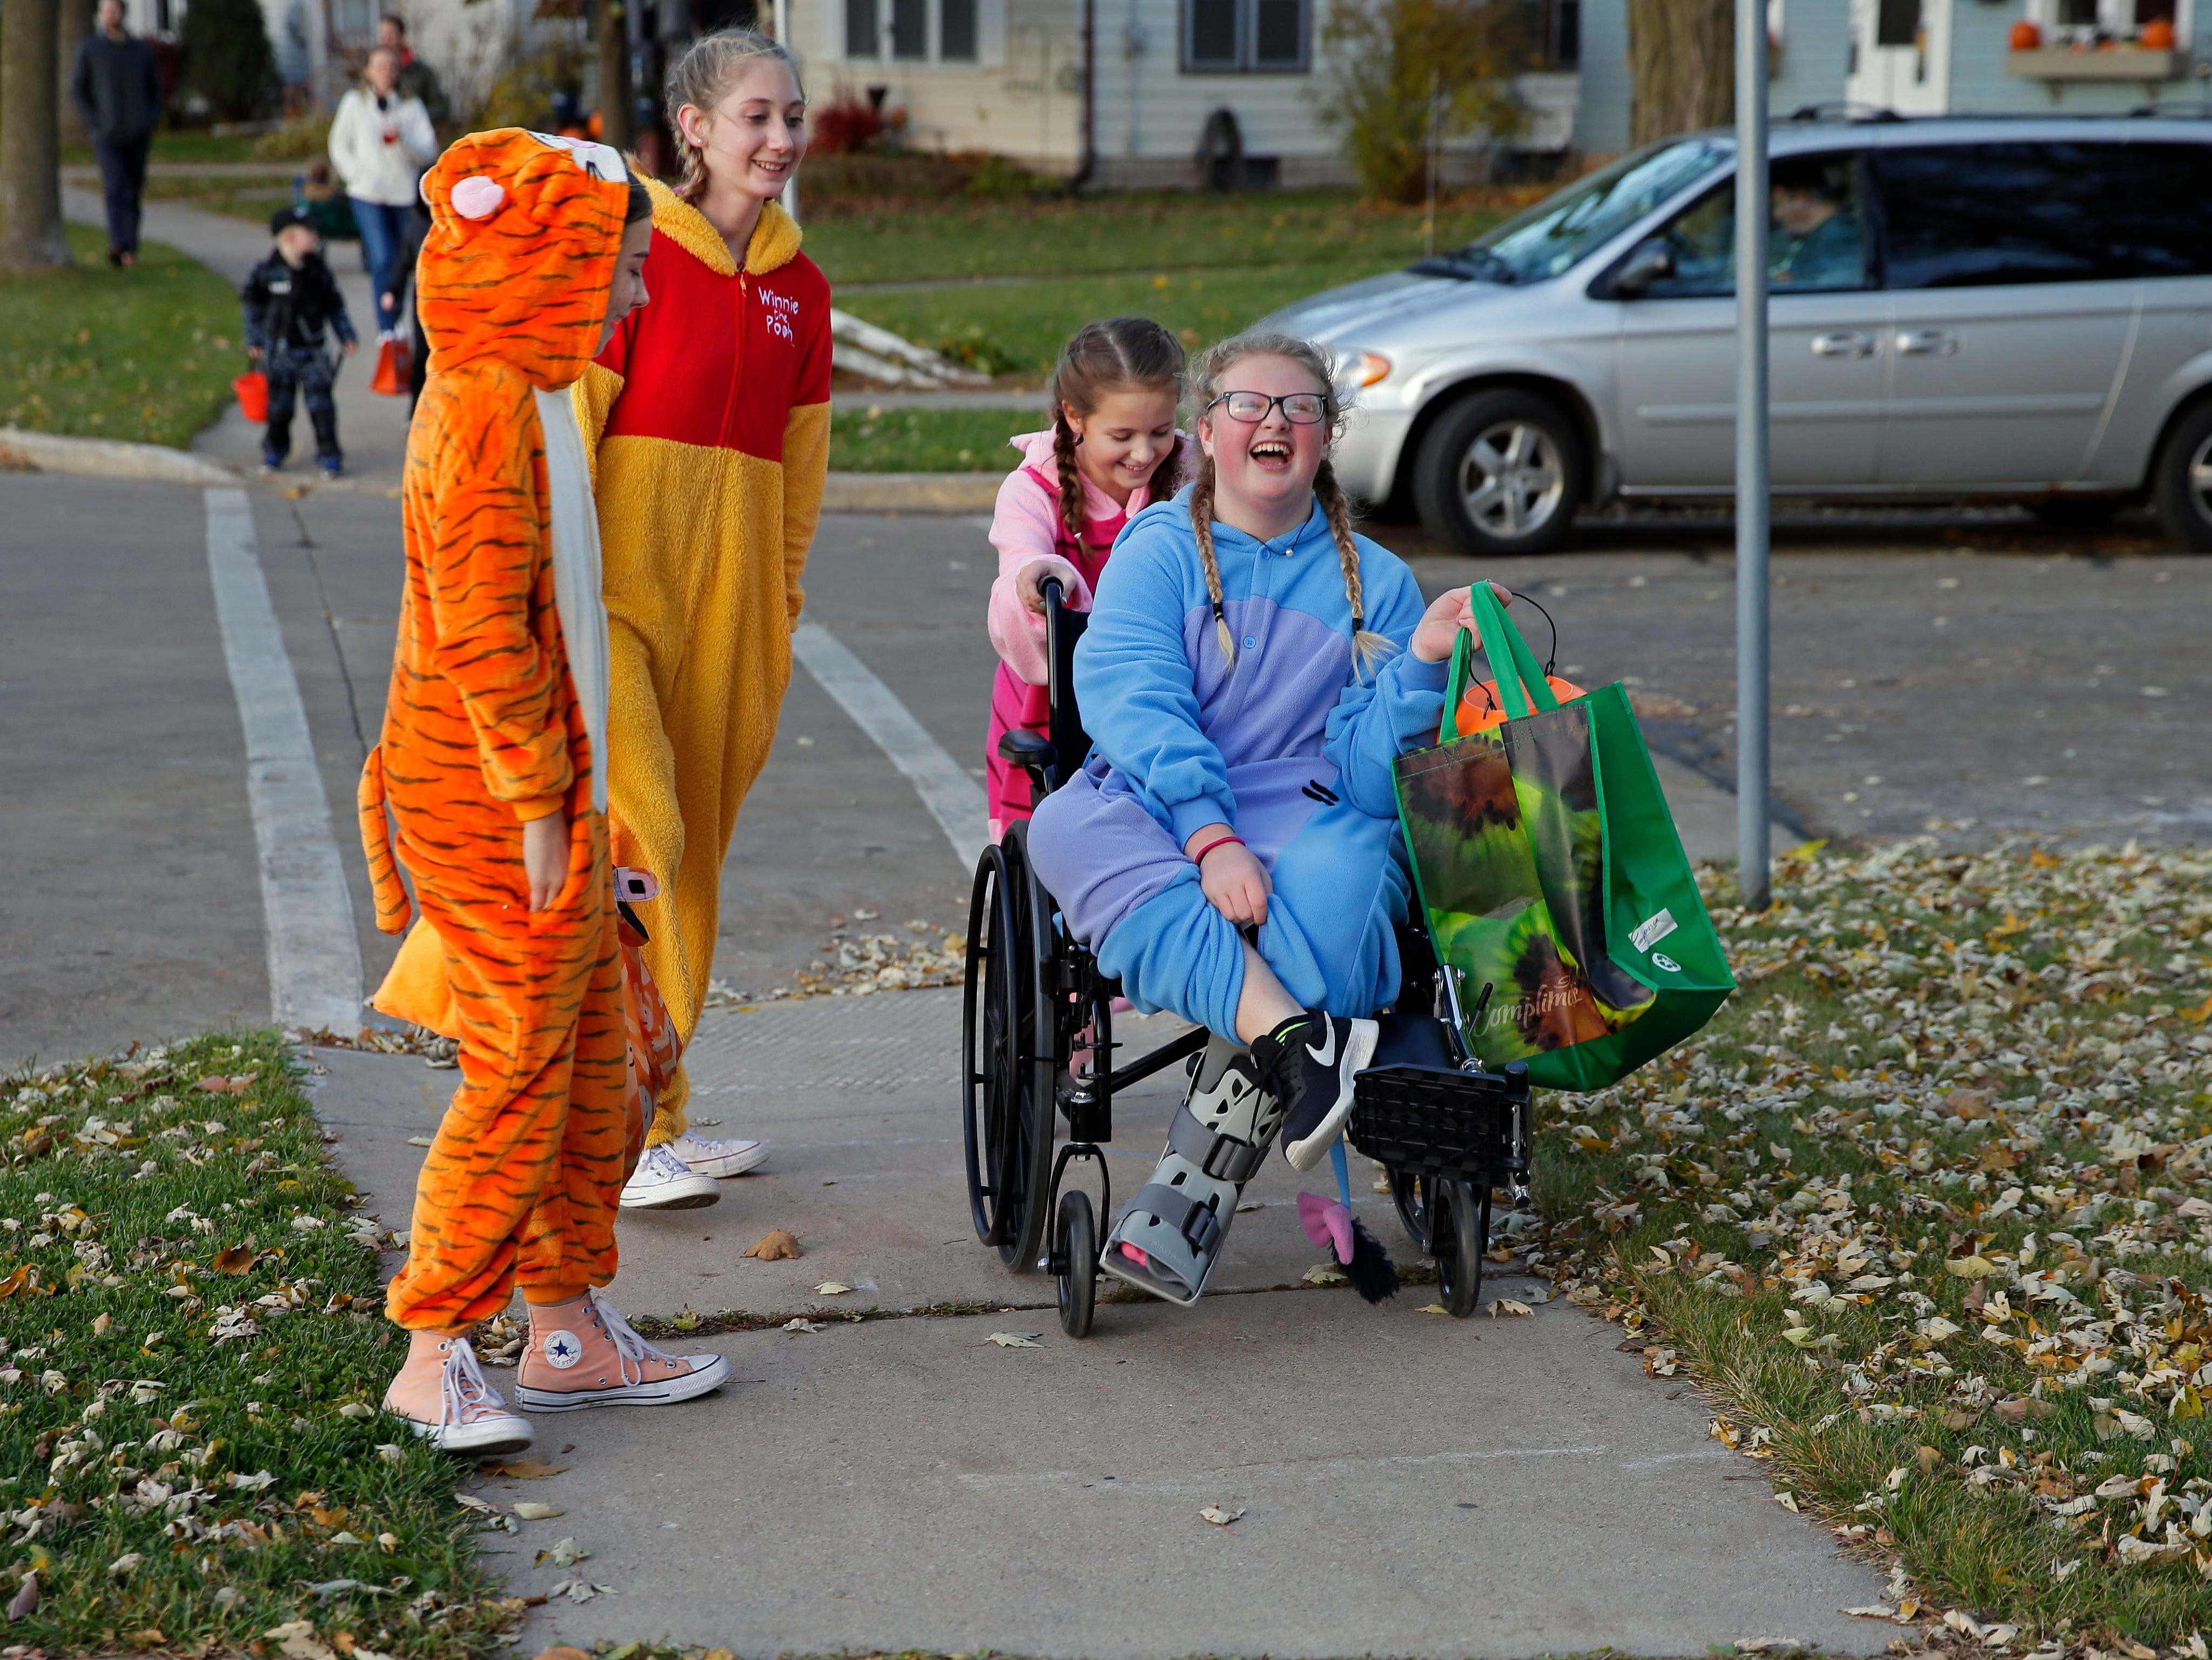 It's Halloween and trick-or-treaters (from left to right) Kate VanderLoop, Megan Conway, Adeline Brzozowski, and Lilli Bird have a laugh as they head to another house Wednesday, October 31, 2018, in Appleton, Wis.